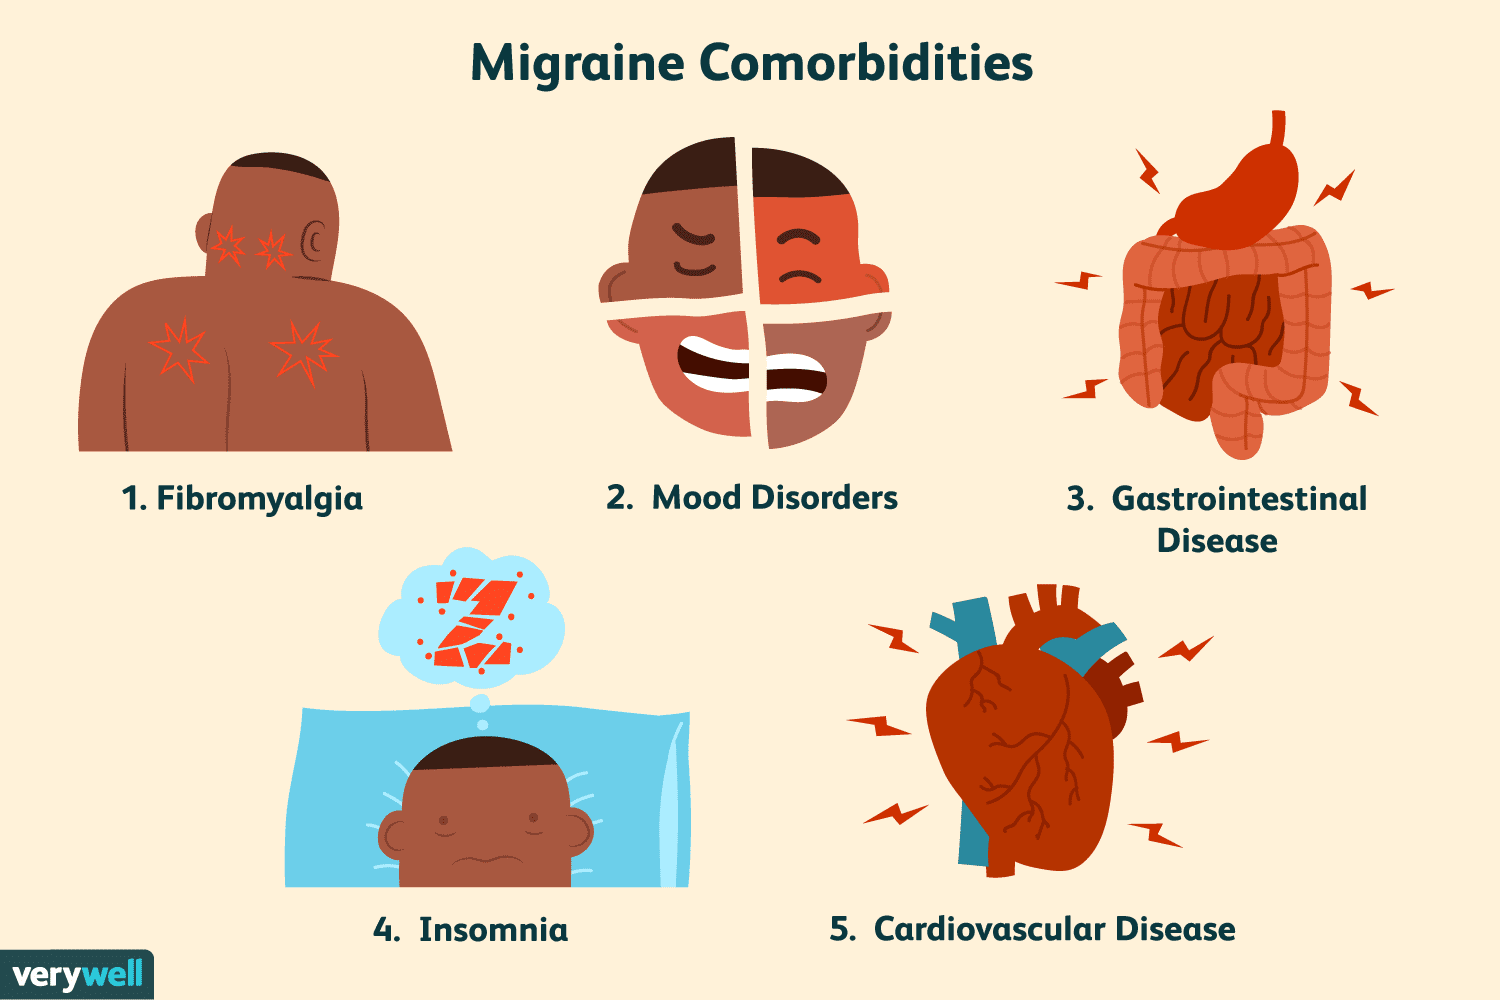 5 Diseases That Commonly Coexist With Migraine